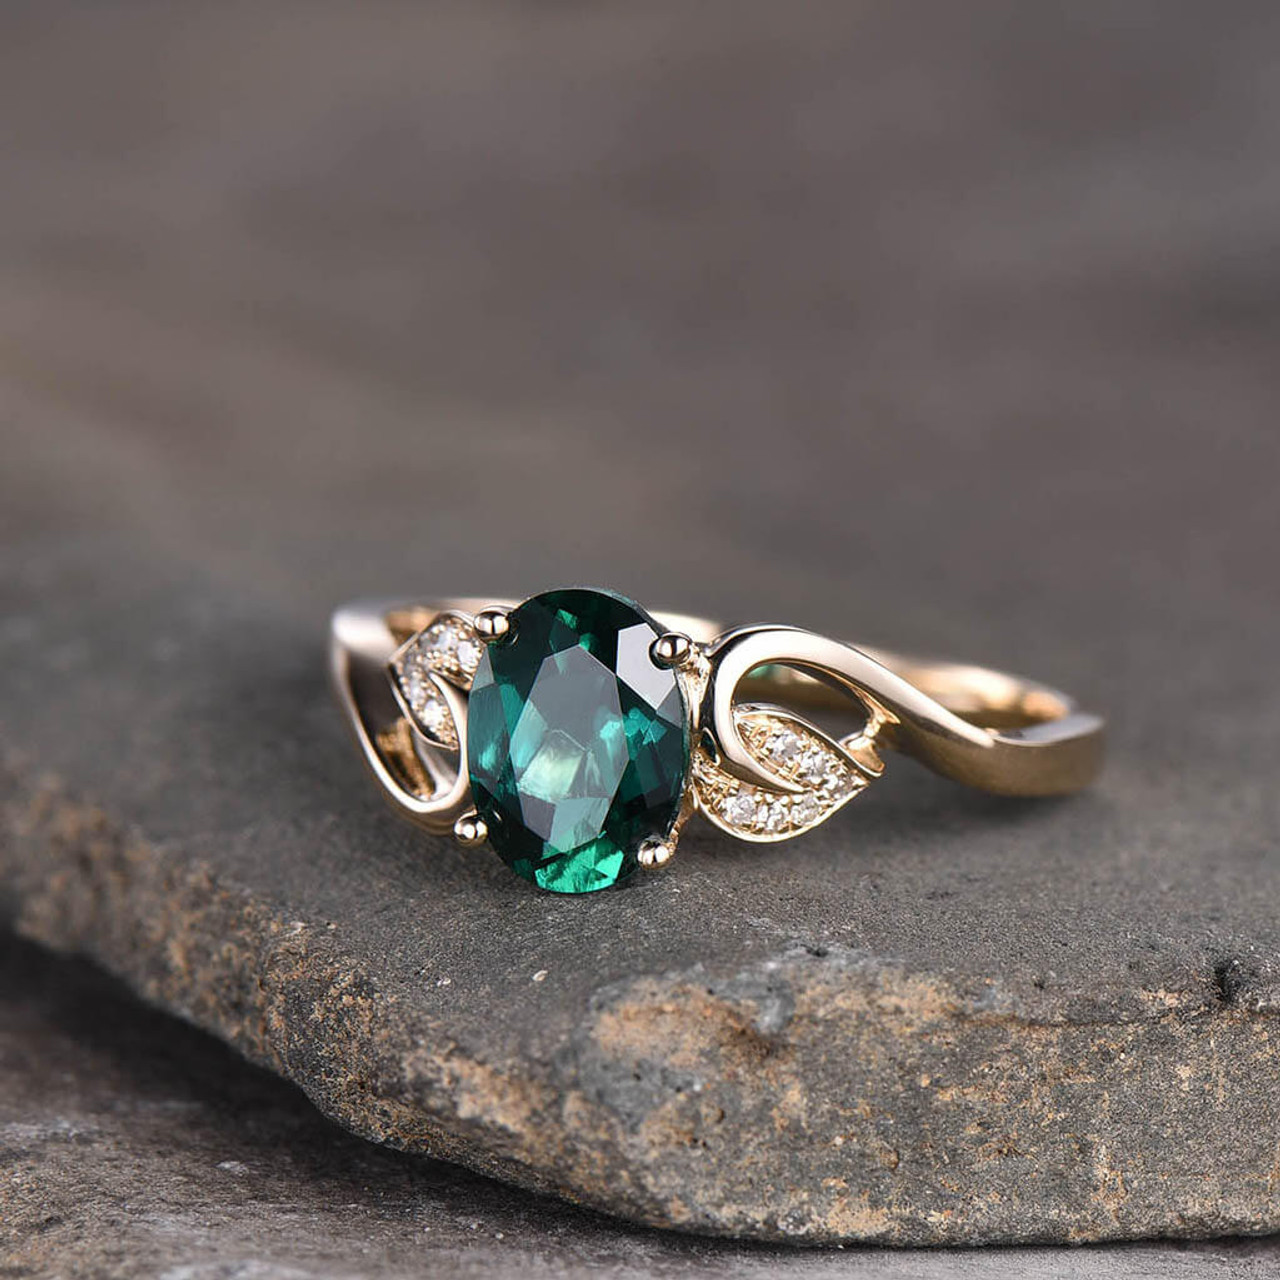 Gold Vintage Ring Emerald Ring Created Emerald Emerald Engagement Ring Gold Ring Gold Engagement Ring Vintage Ring Gold Emerald Ring